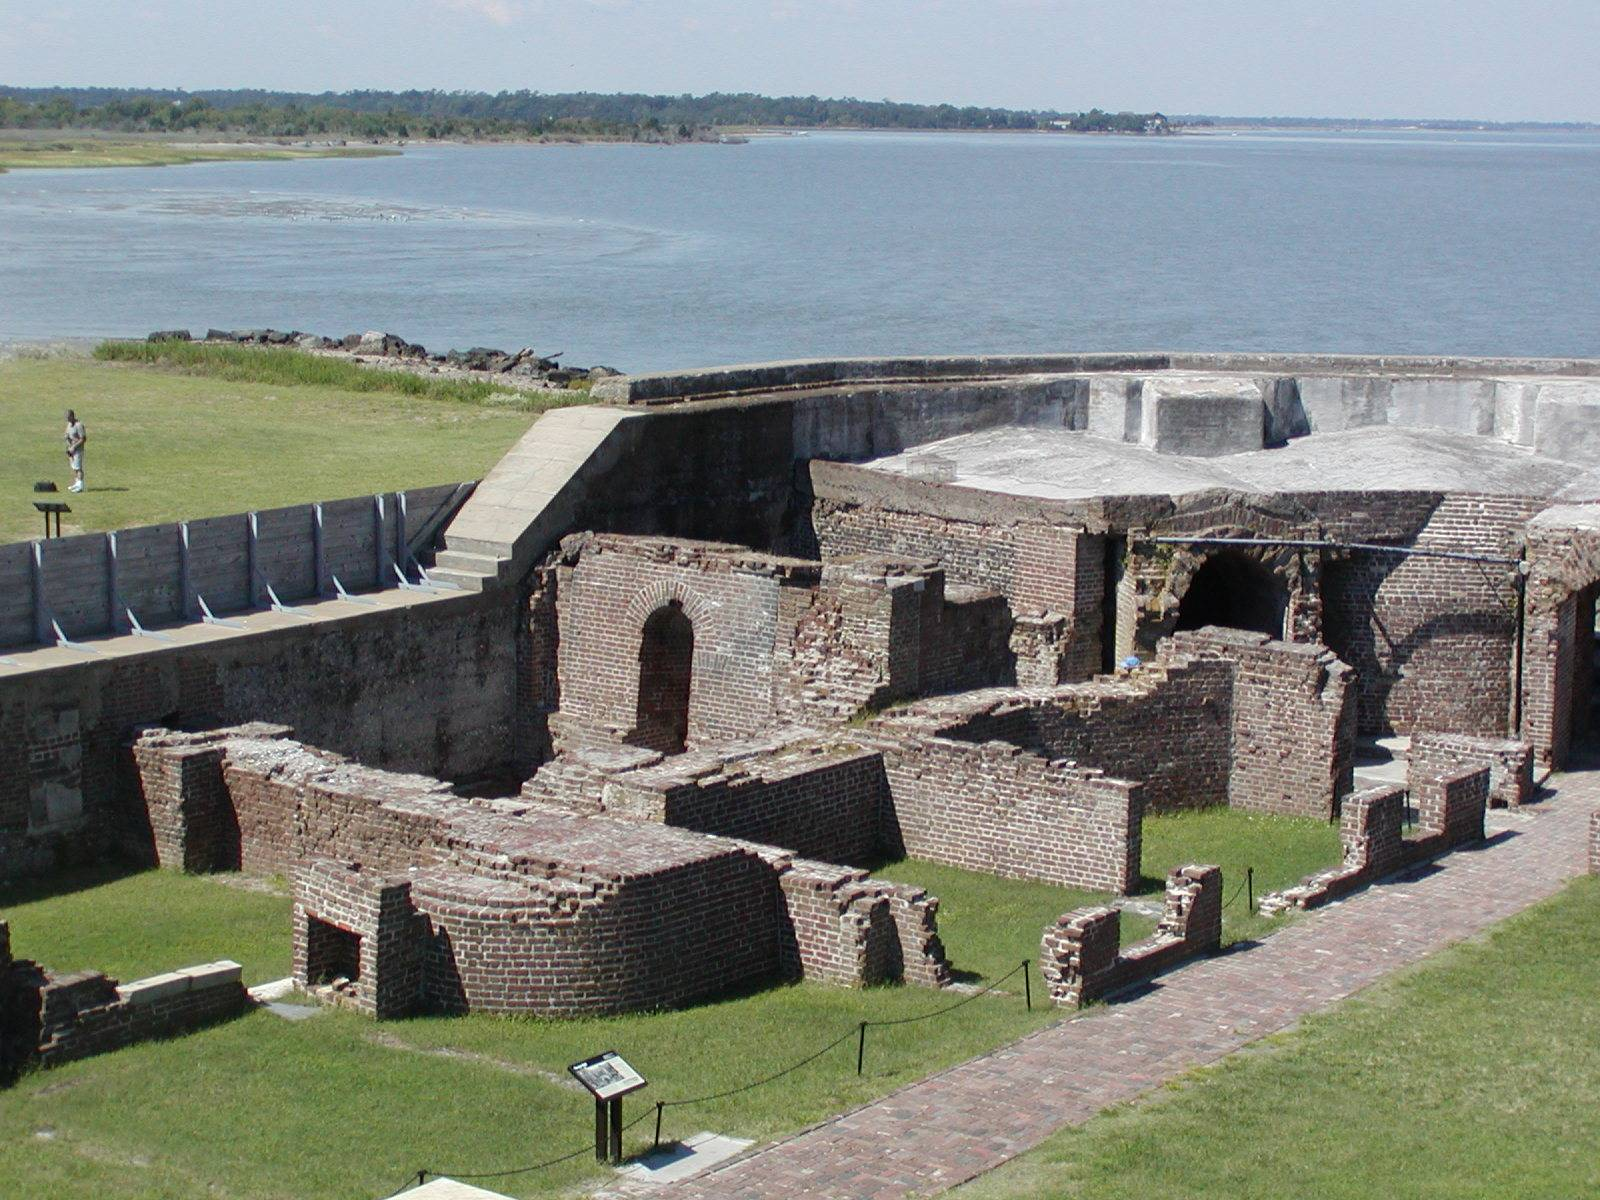 fort sumter In the early dawn of april 12, 1861, a mortar shell fired from fort johnson in  charleston harbor burst over fort sumter, inaugurating the american civil war.